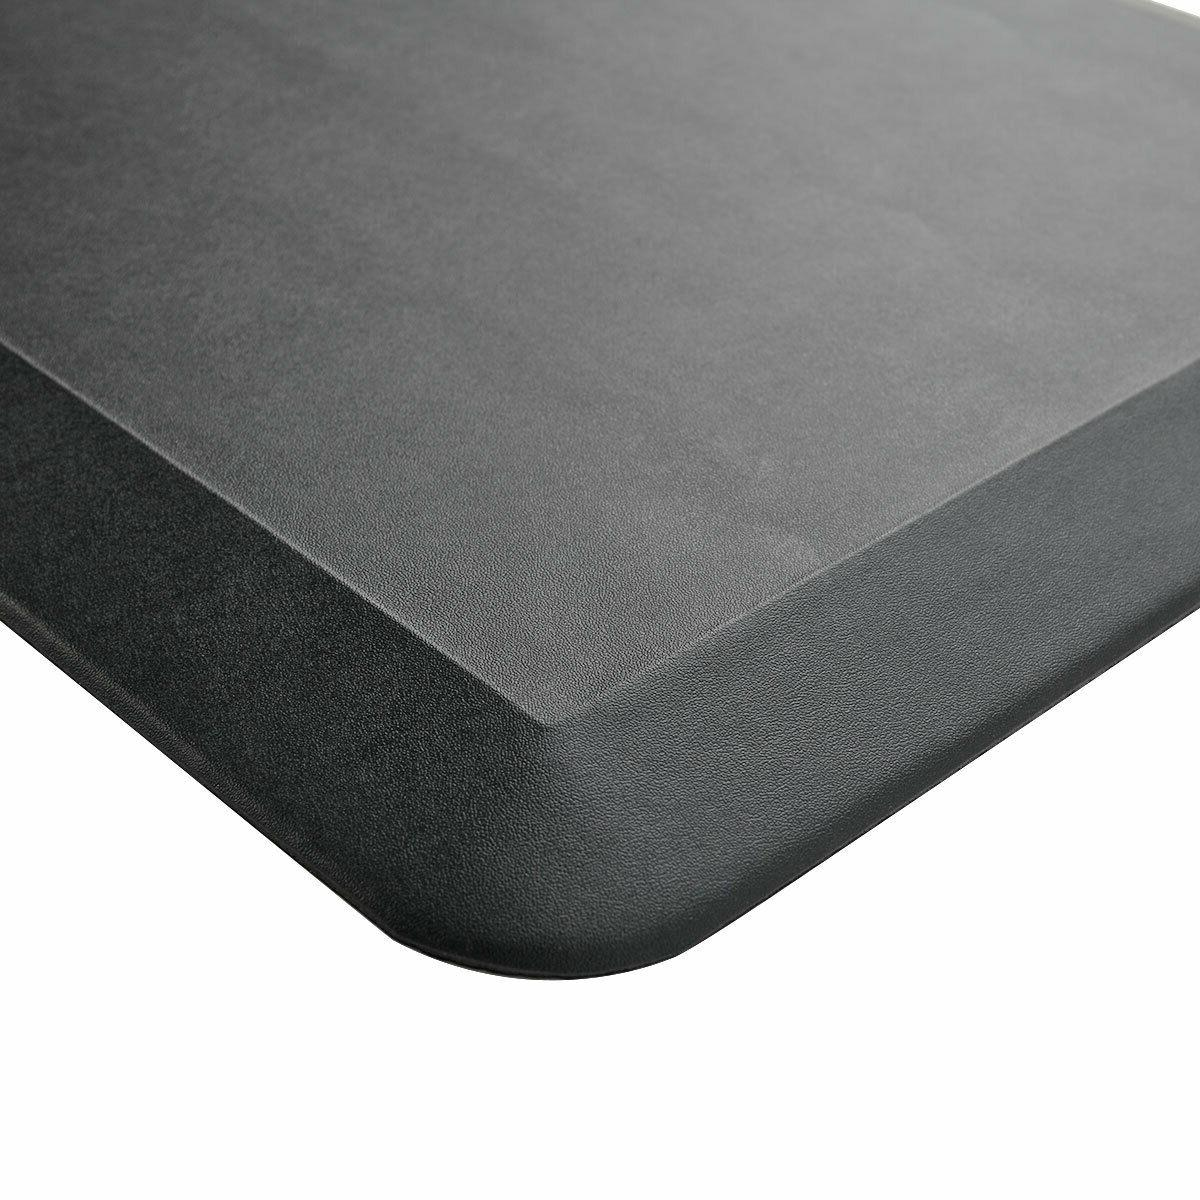 PVC Anti-Fatigue Mat Office Home Desk